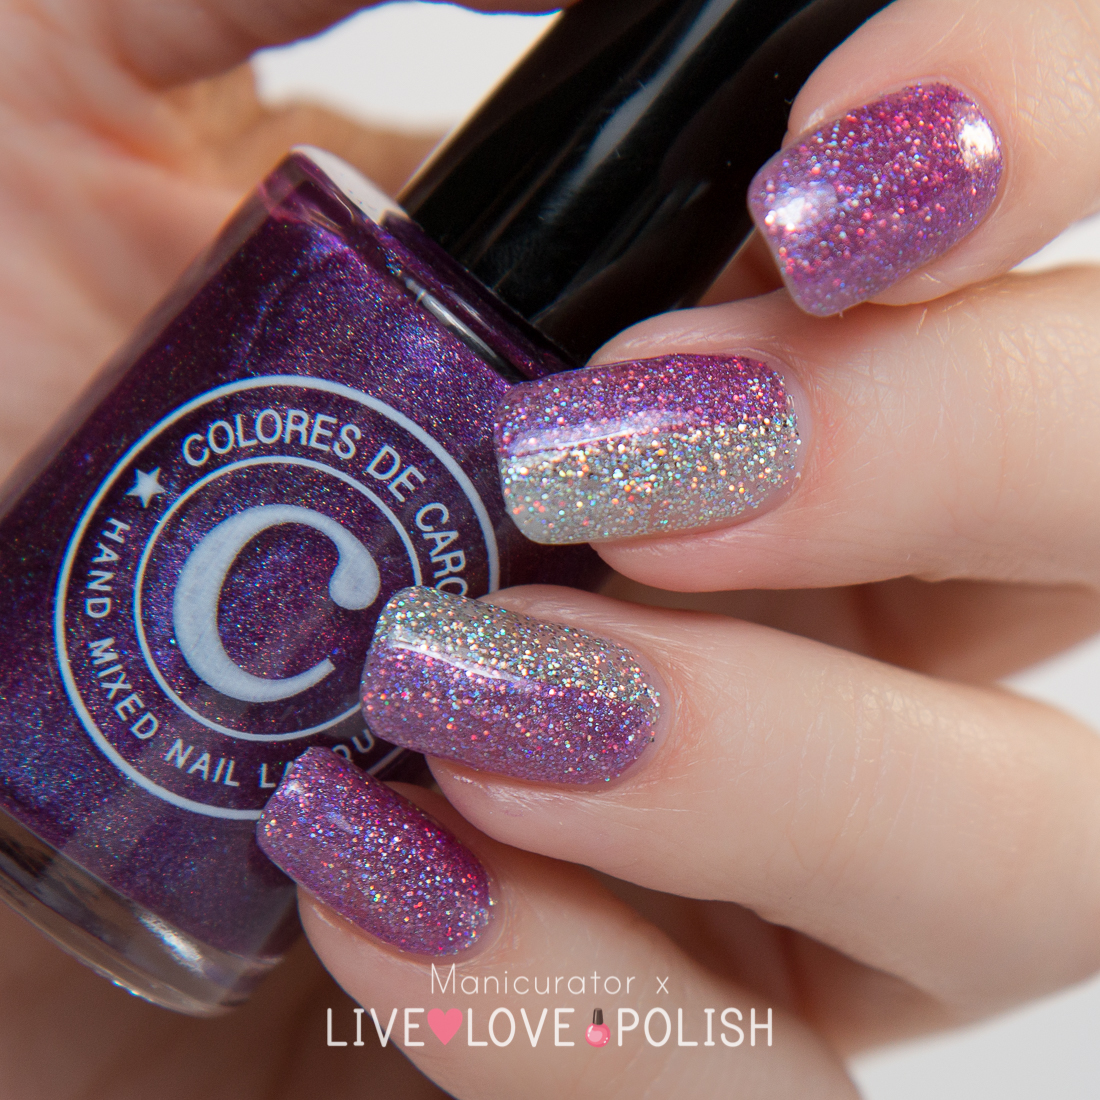 Colores-de-Carol-Bling-Amethyst-Swatch-Live-Love-Polish